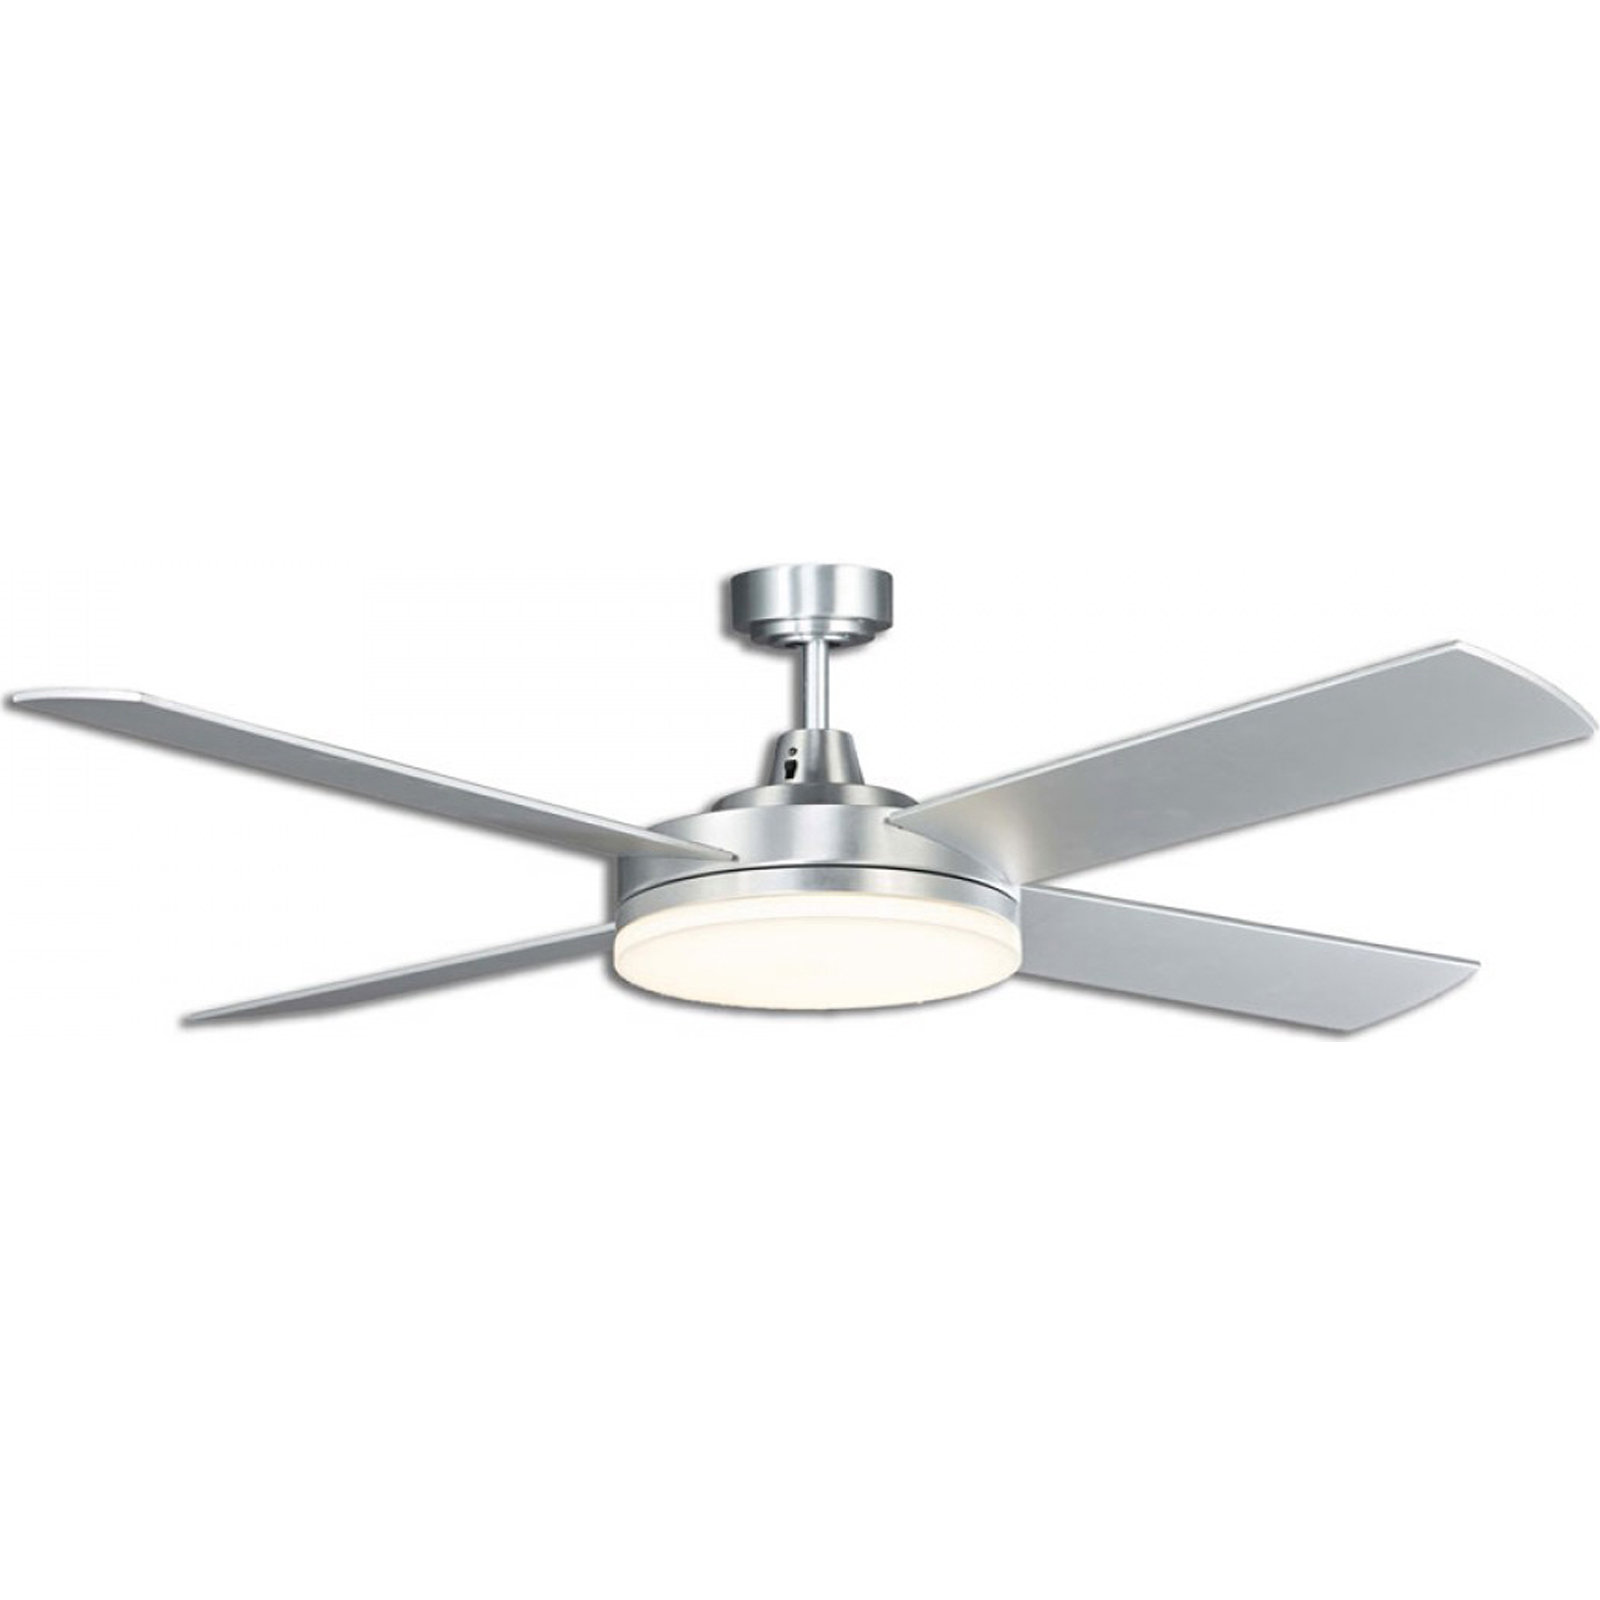 Contemporary Low Profile Ceiling Fans 25 Reasons To Install Low Profile Ceiling Fan Light Kit